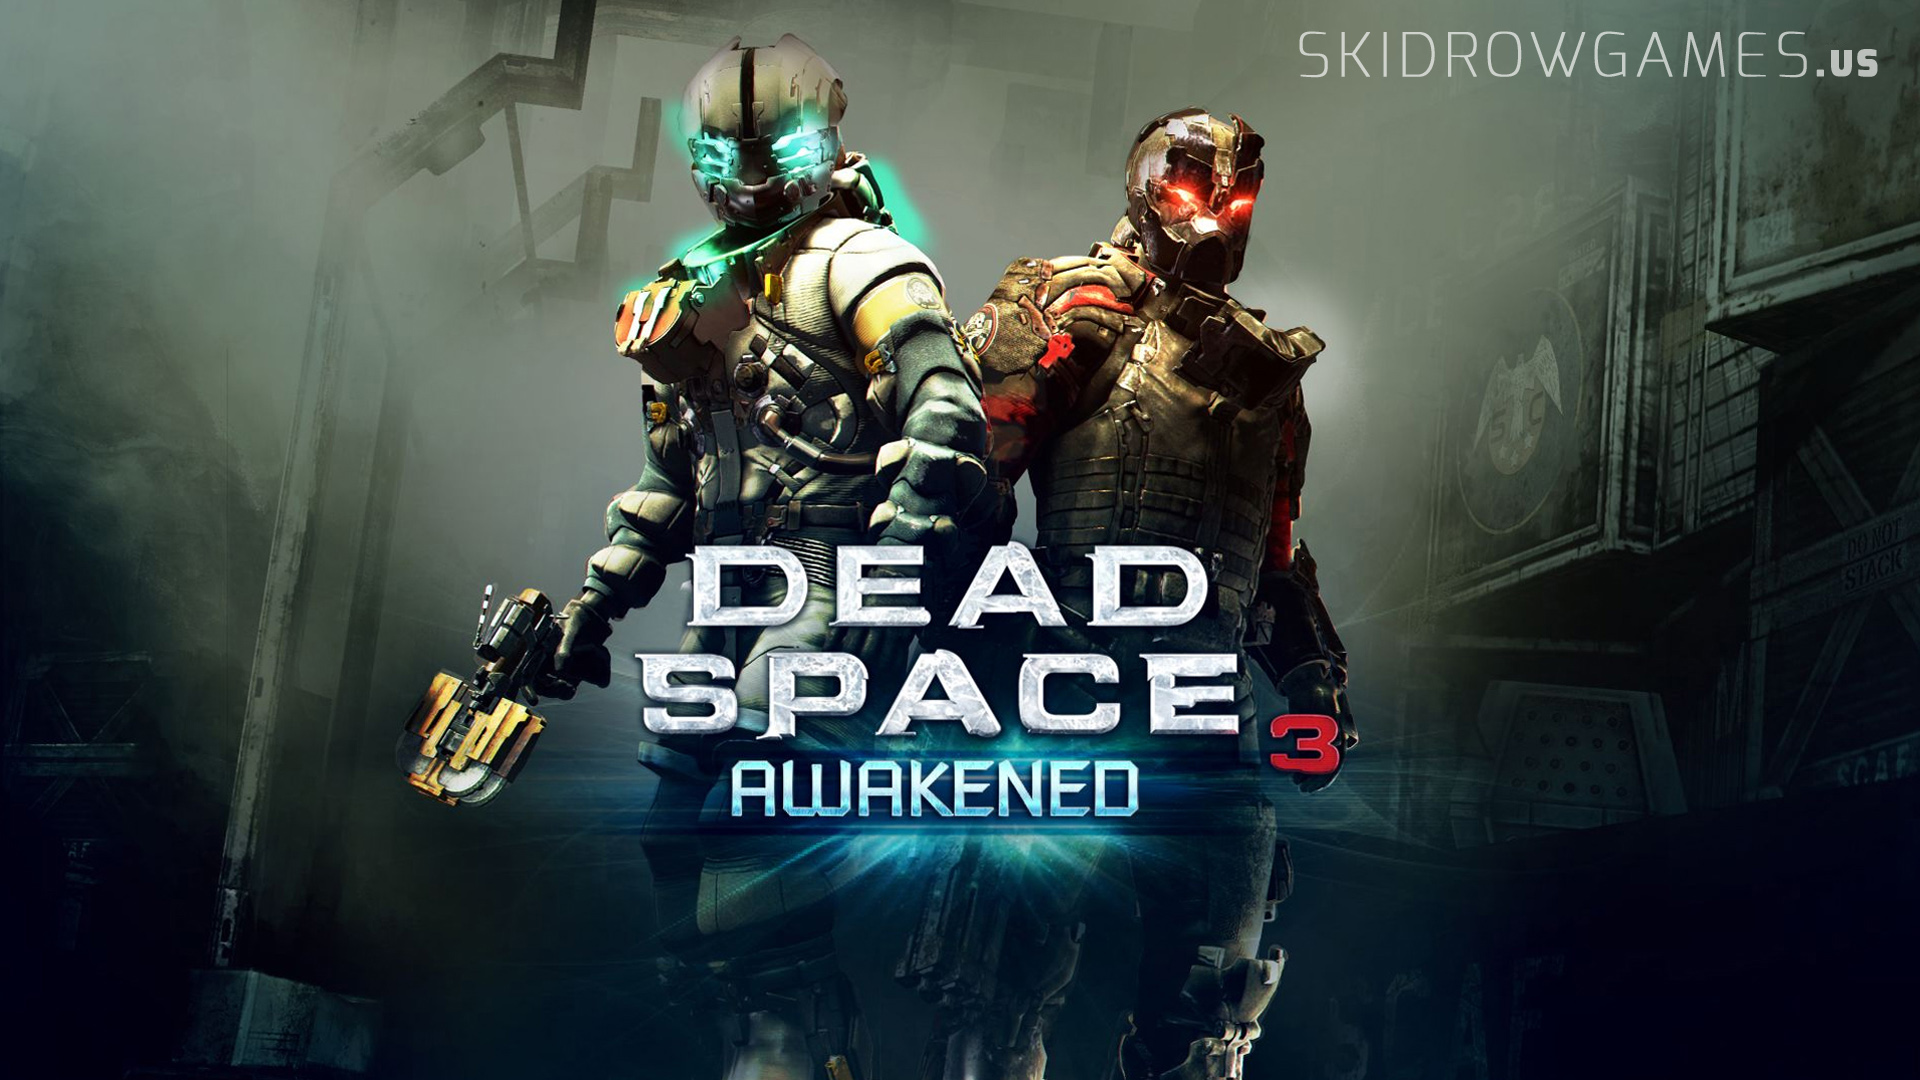 Dead Space 3 Review: Scare Tactics (PC, PS3, XBOX 360) | SkidrowGames